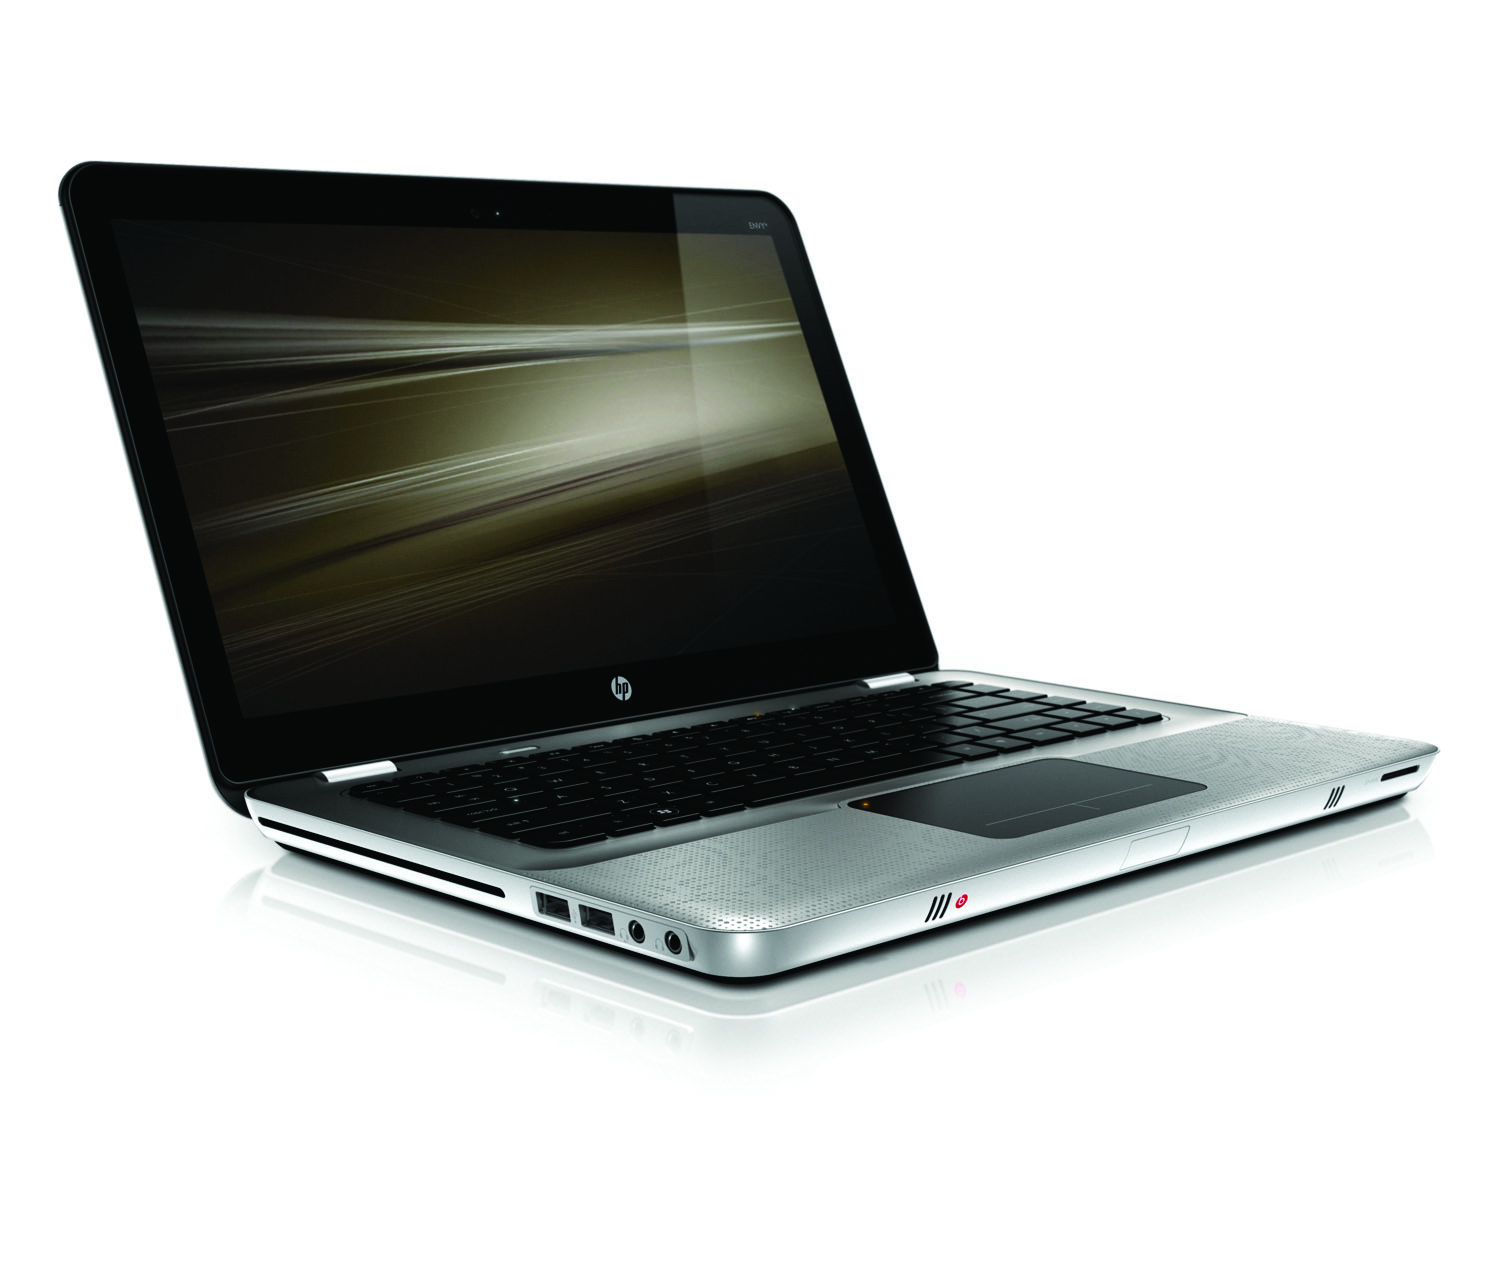 HP Envy 14, front right on white